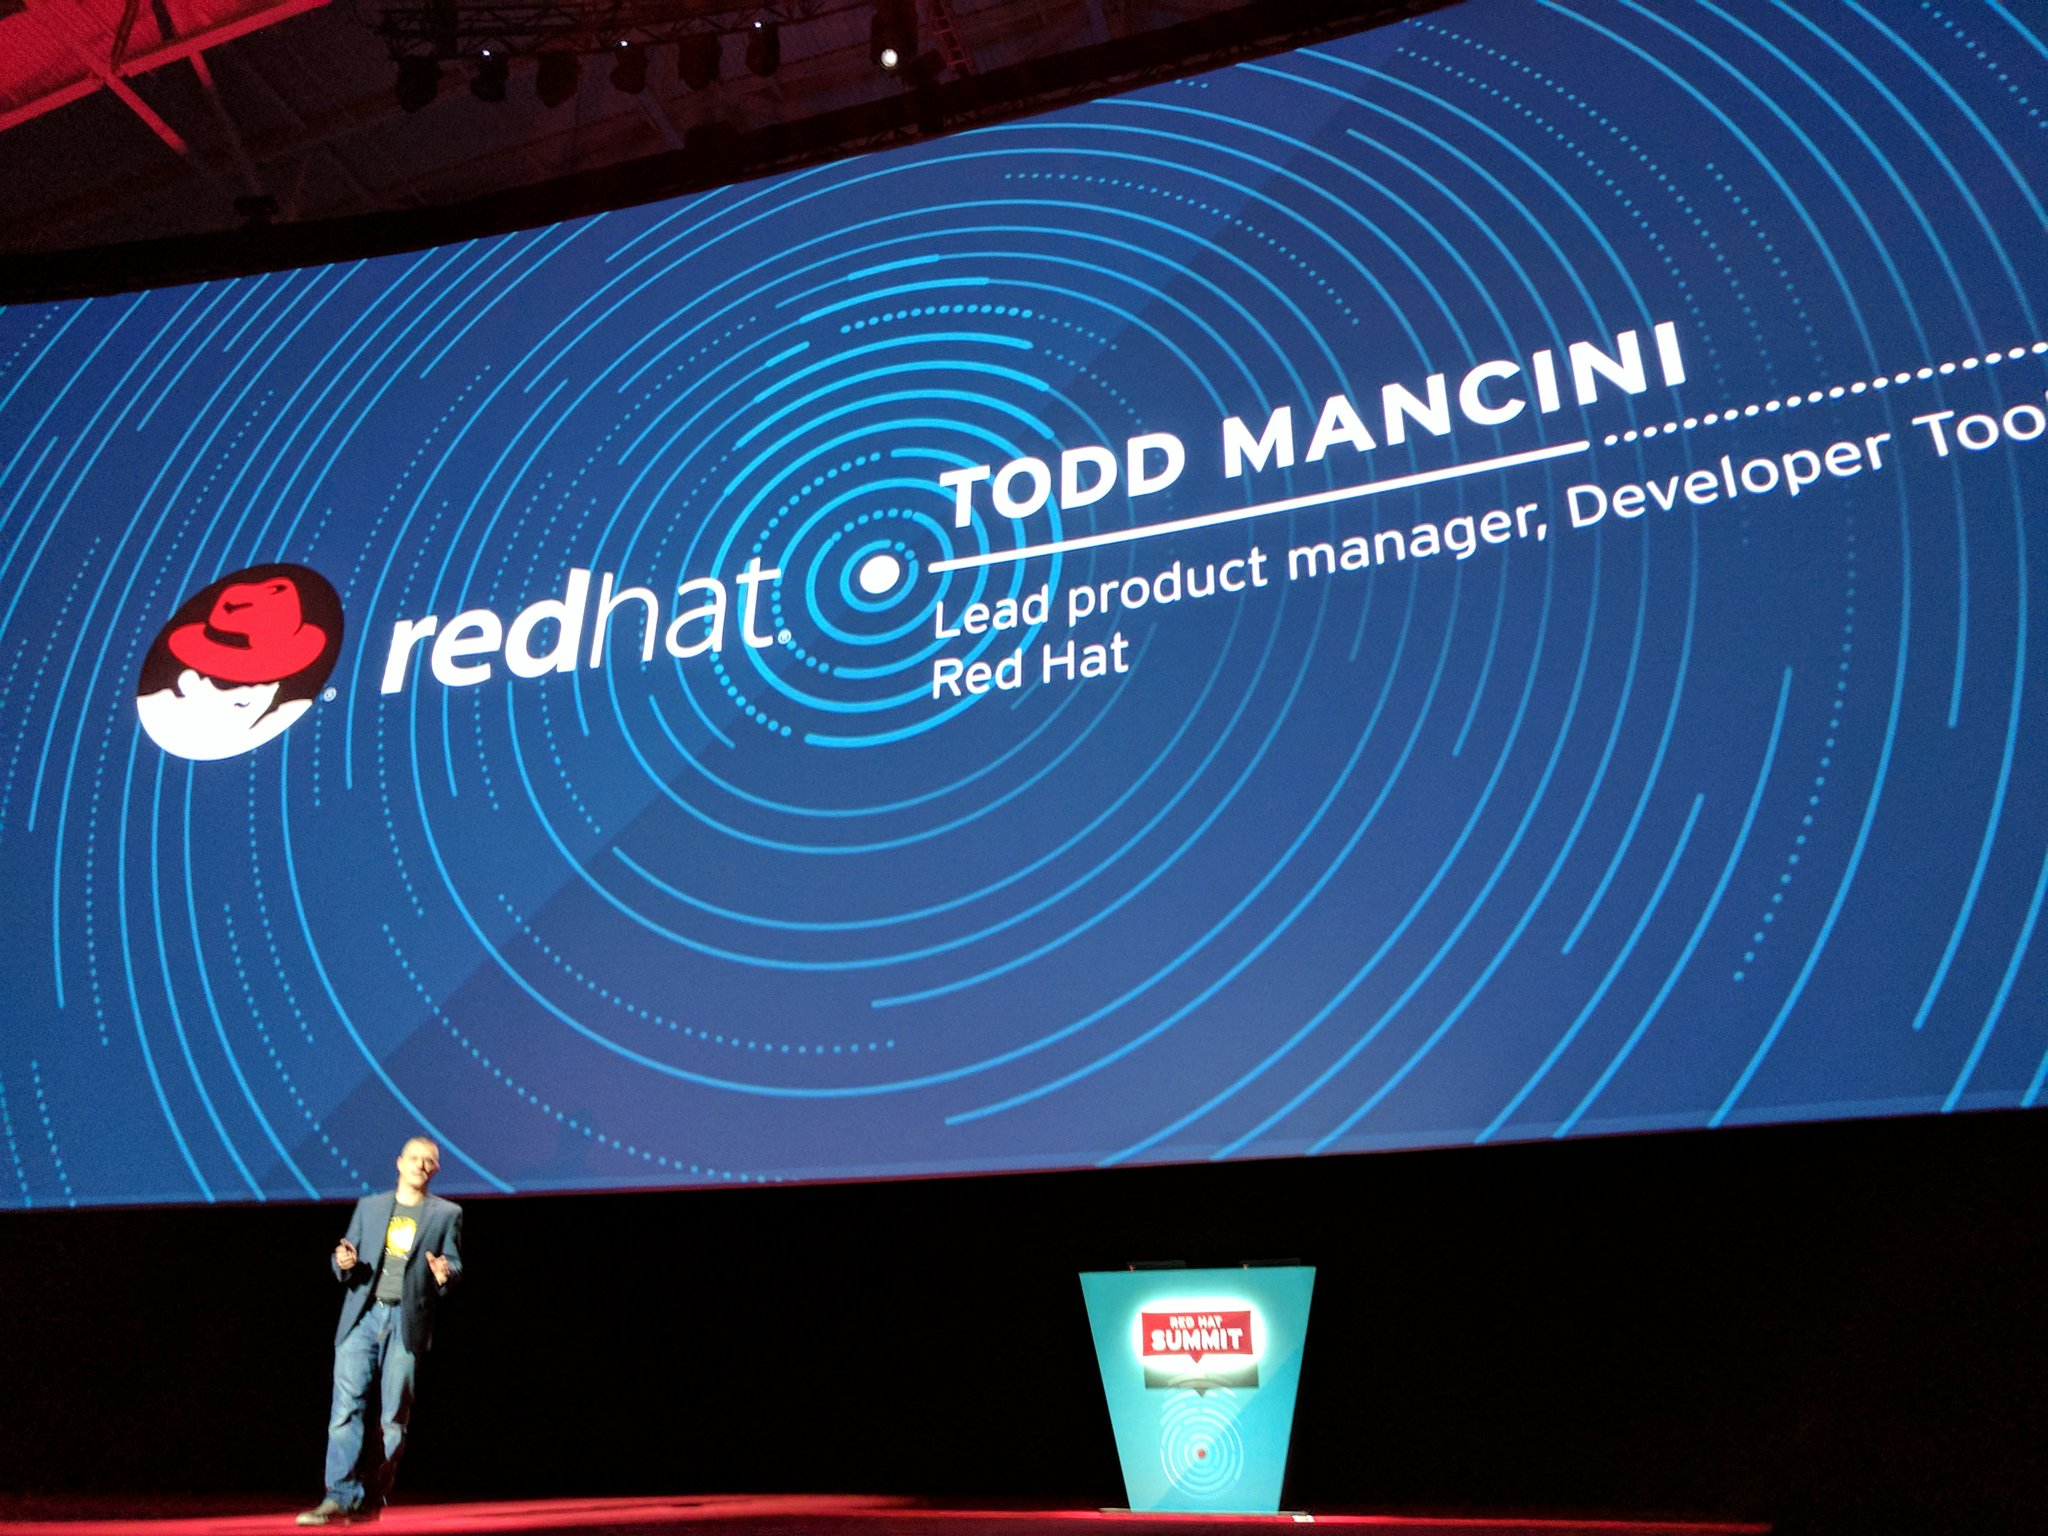 Next up - @ToddMancini on how @RedHatNews Wants to win over developers - more #Cloud native development #RHSummit https://t.co/GzNaw4tZrE